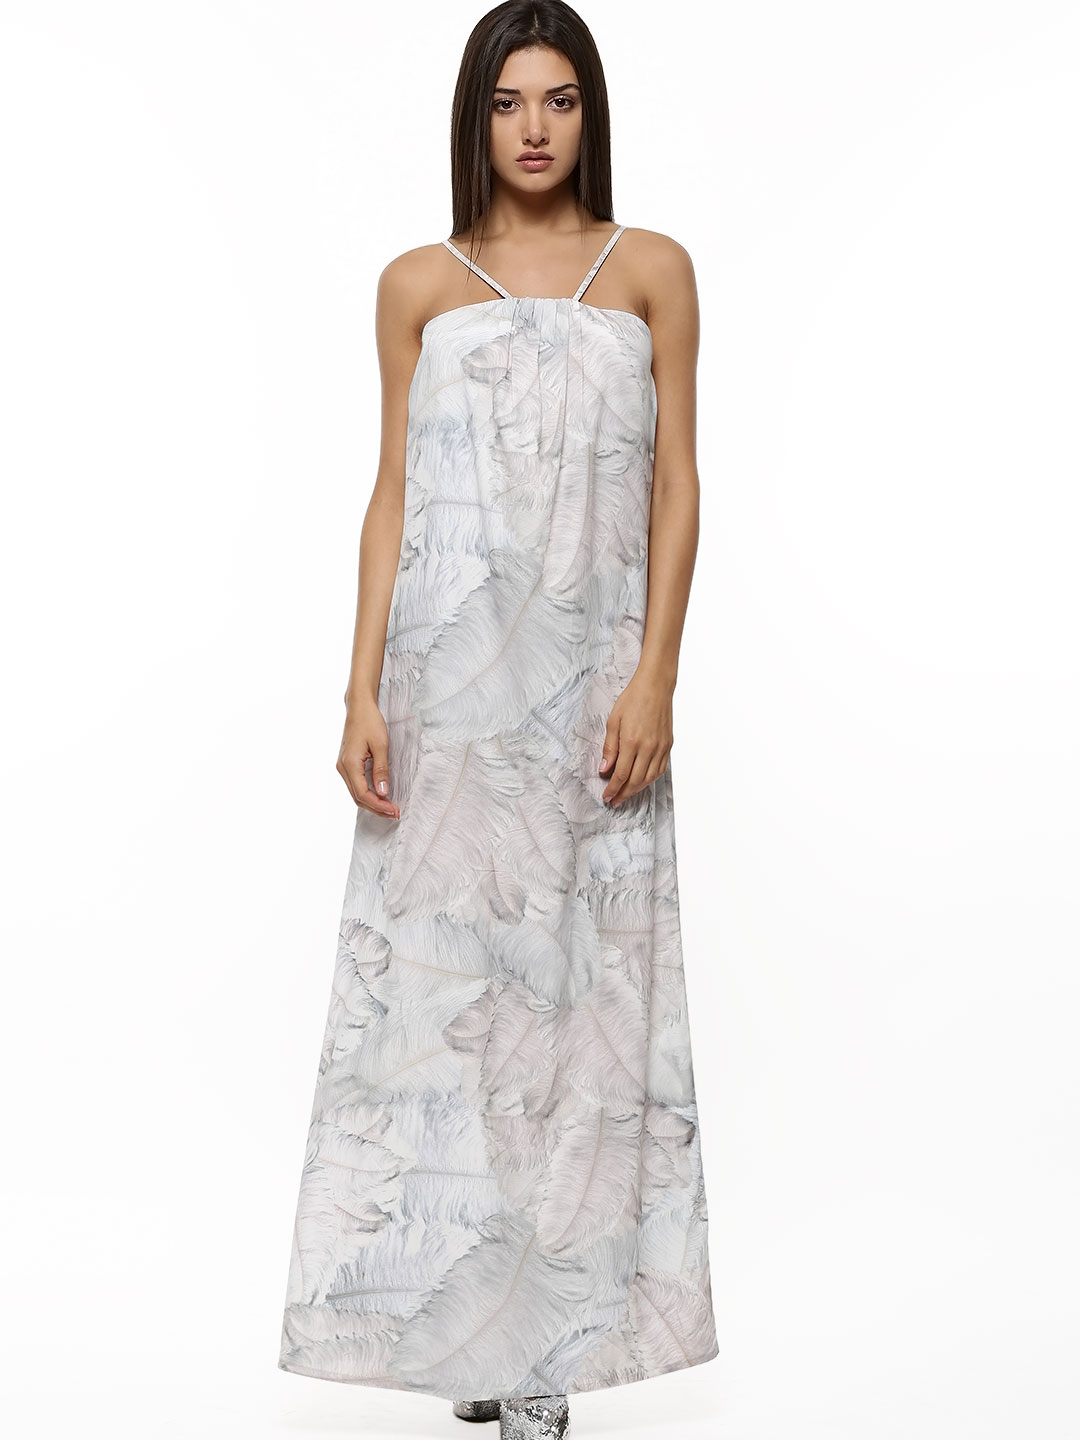 GILES AT KOOVS Multi Feather Print Strappy Maxi Dress 1